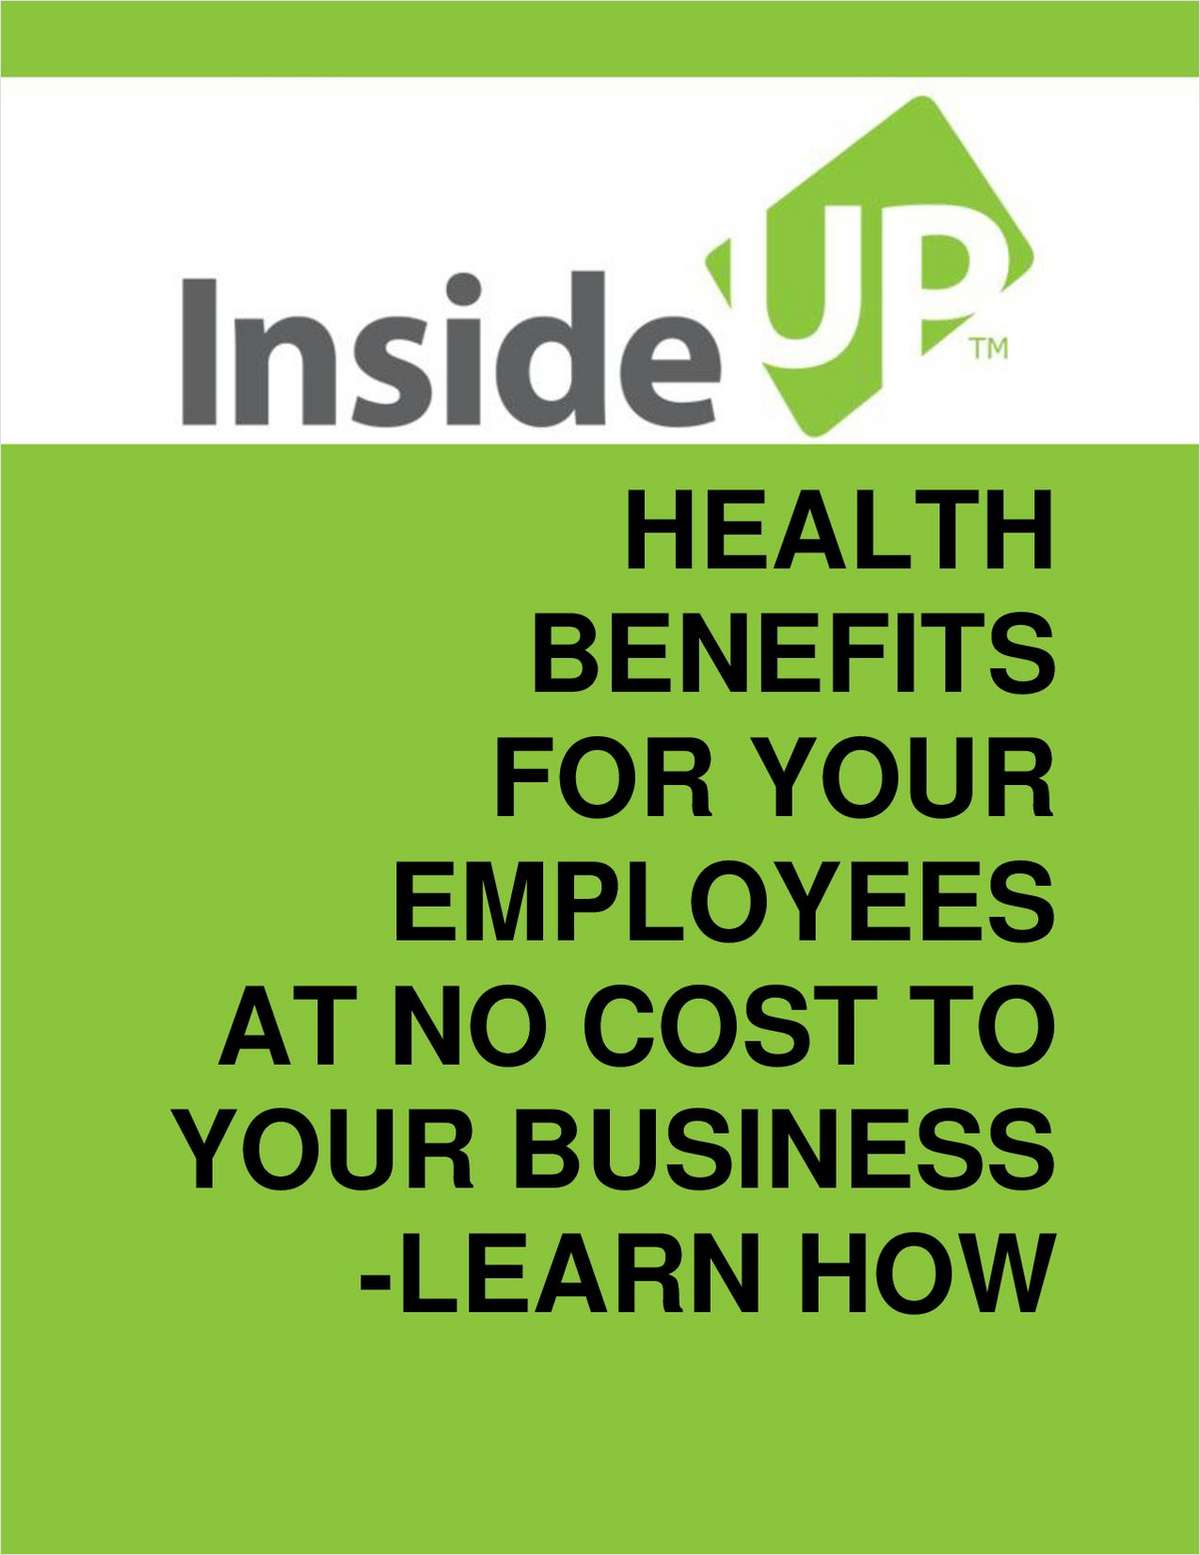 How To Offer Health Benefits to Your Employees at No Cost to Your Business